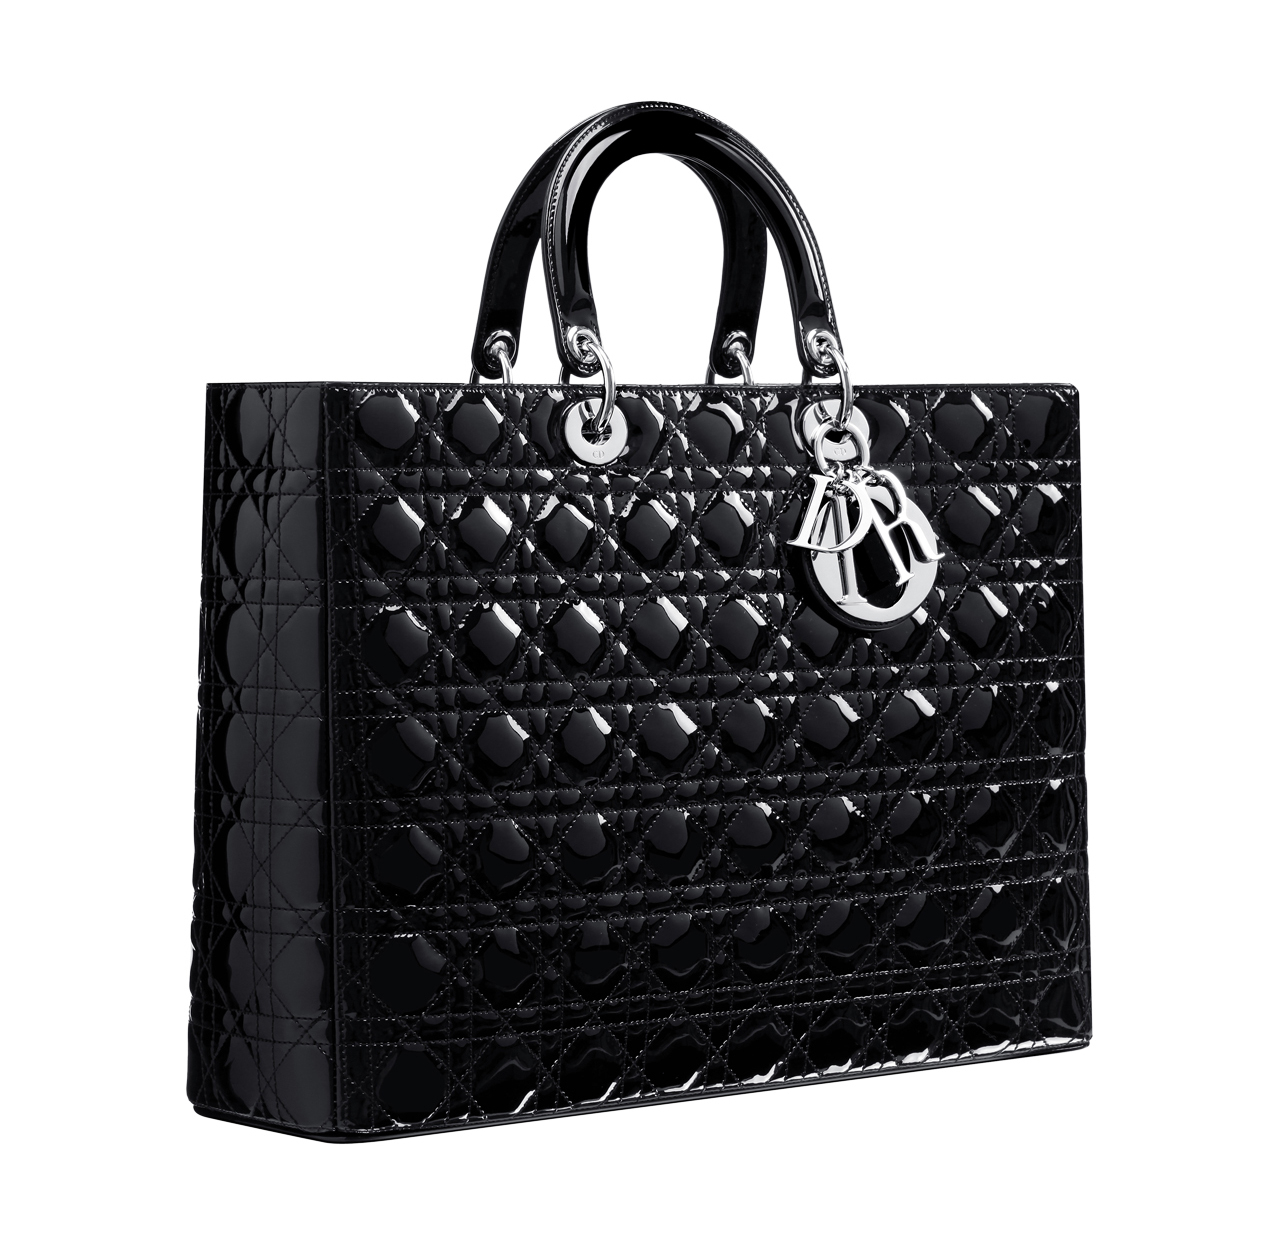 Dior Large Miss Ping Bag In Black Patent Leather